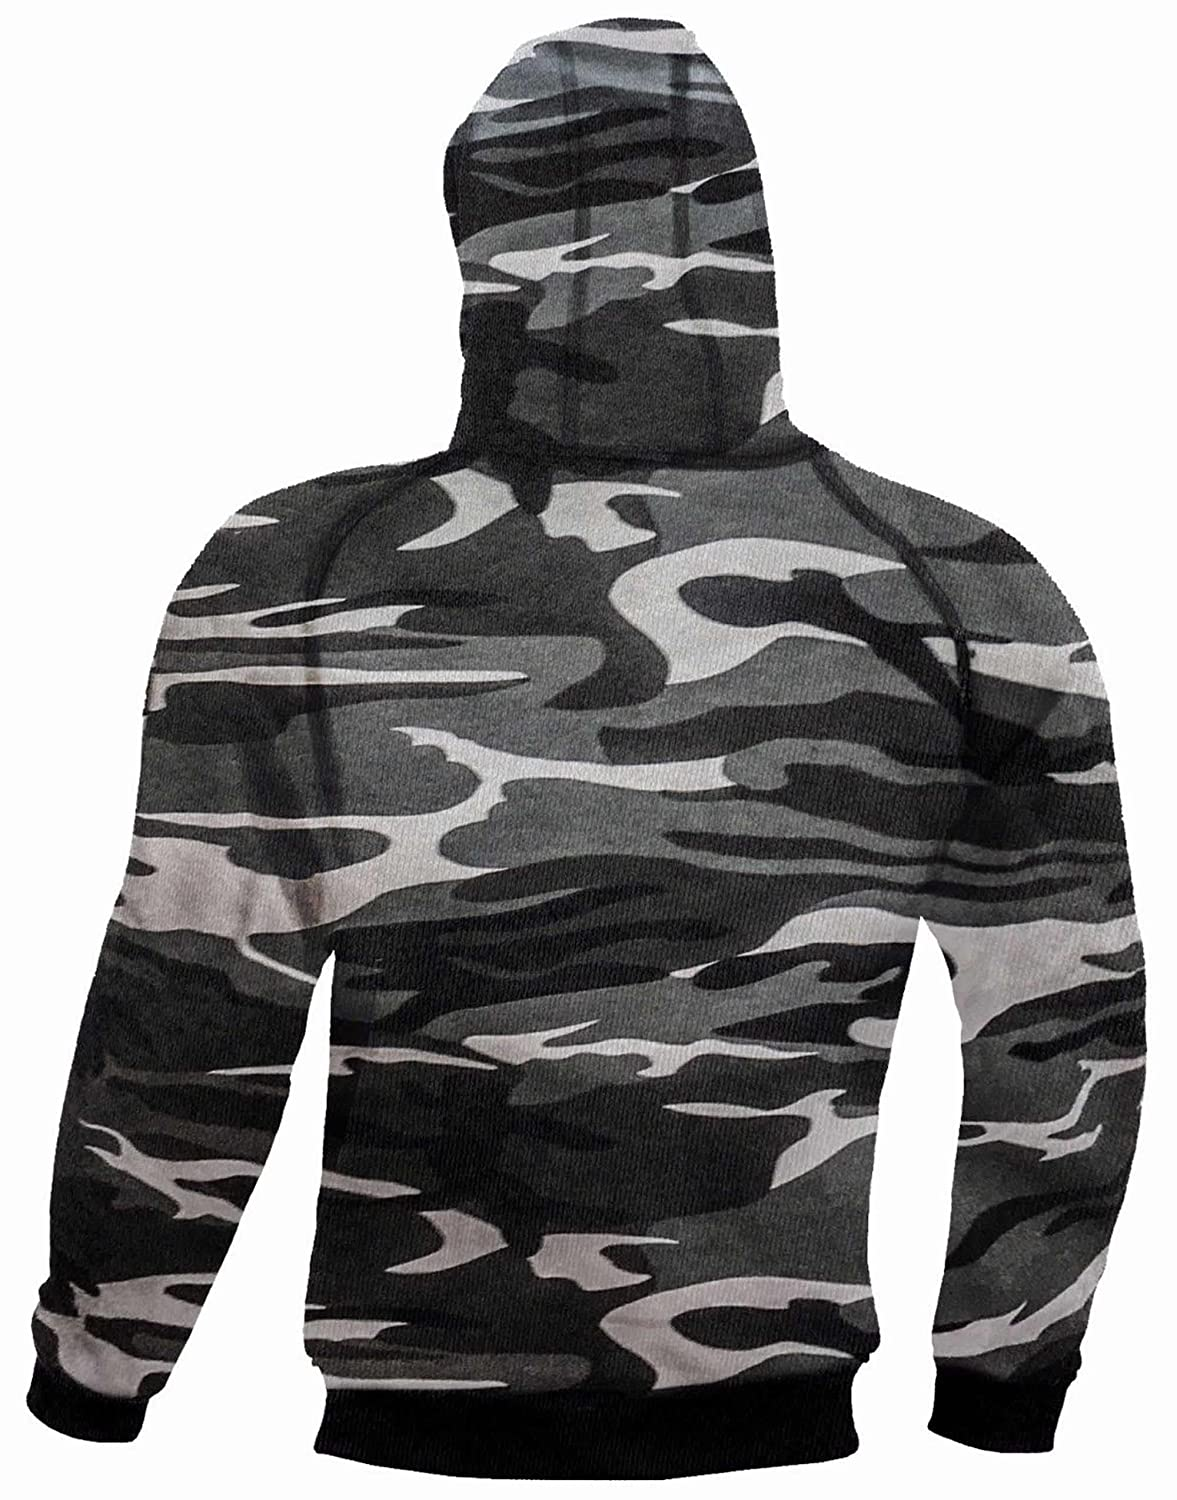 Armoured Hoodie Motorcycle Motorbike Summer Hoody Jacket Zip Up Removable Armor Bikers Camouflage Red Size = 5X Large